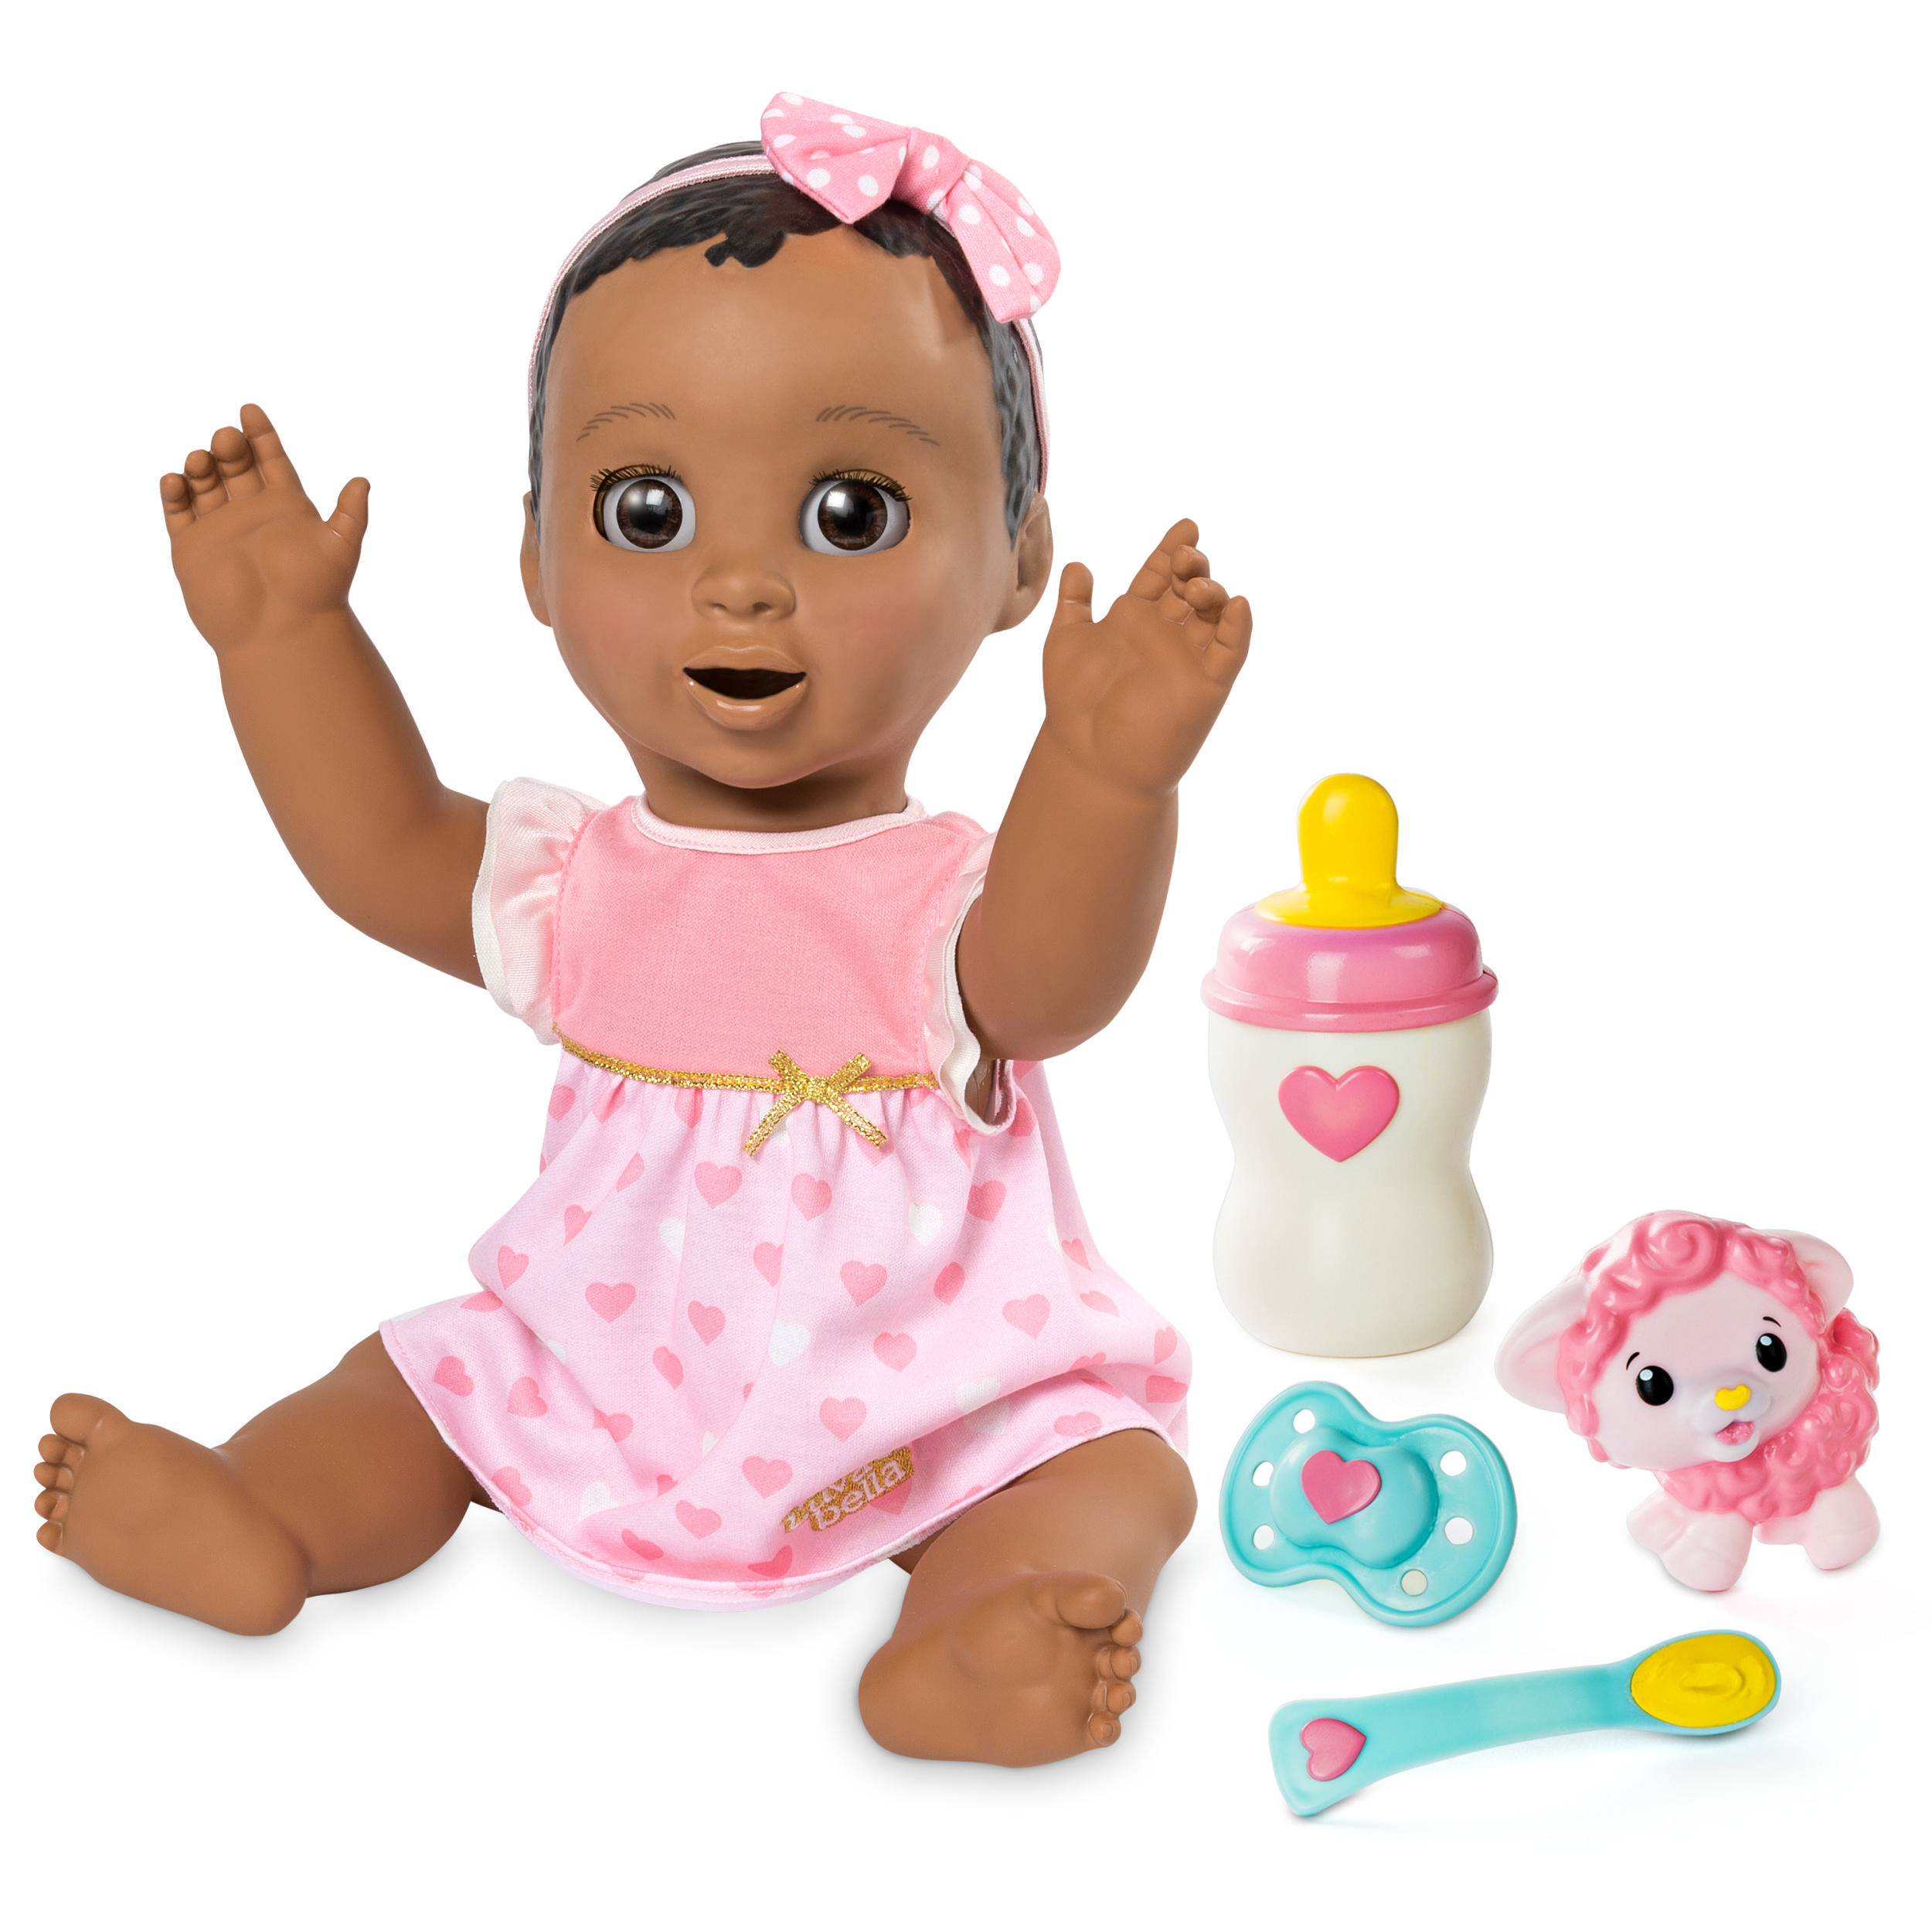 Luvabella Responsive Baby Doll Dark Brown Hair